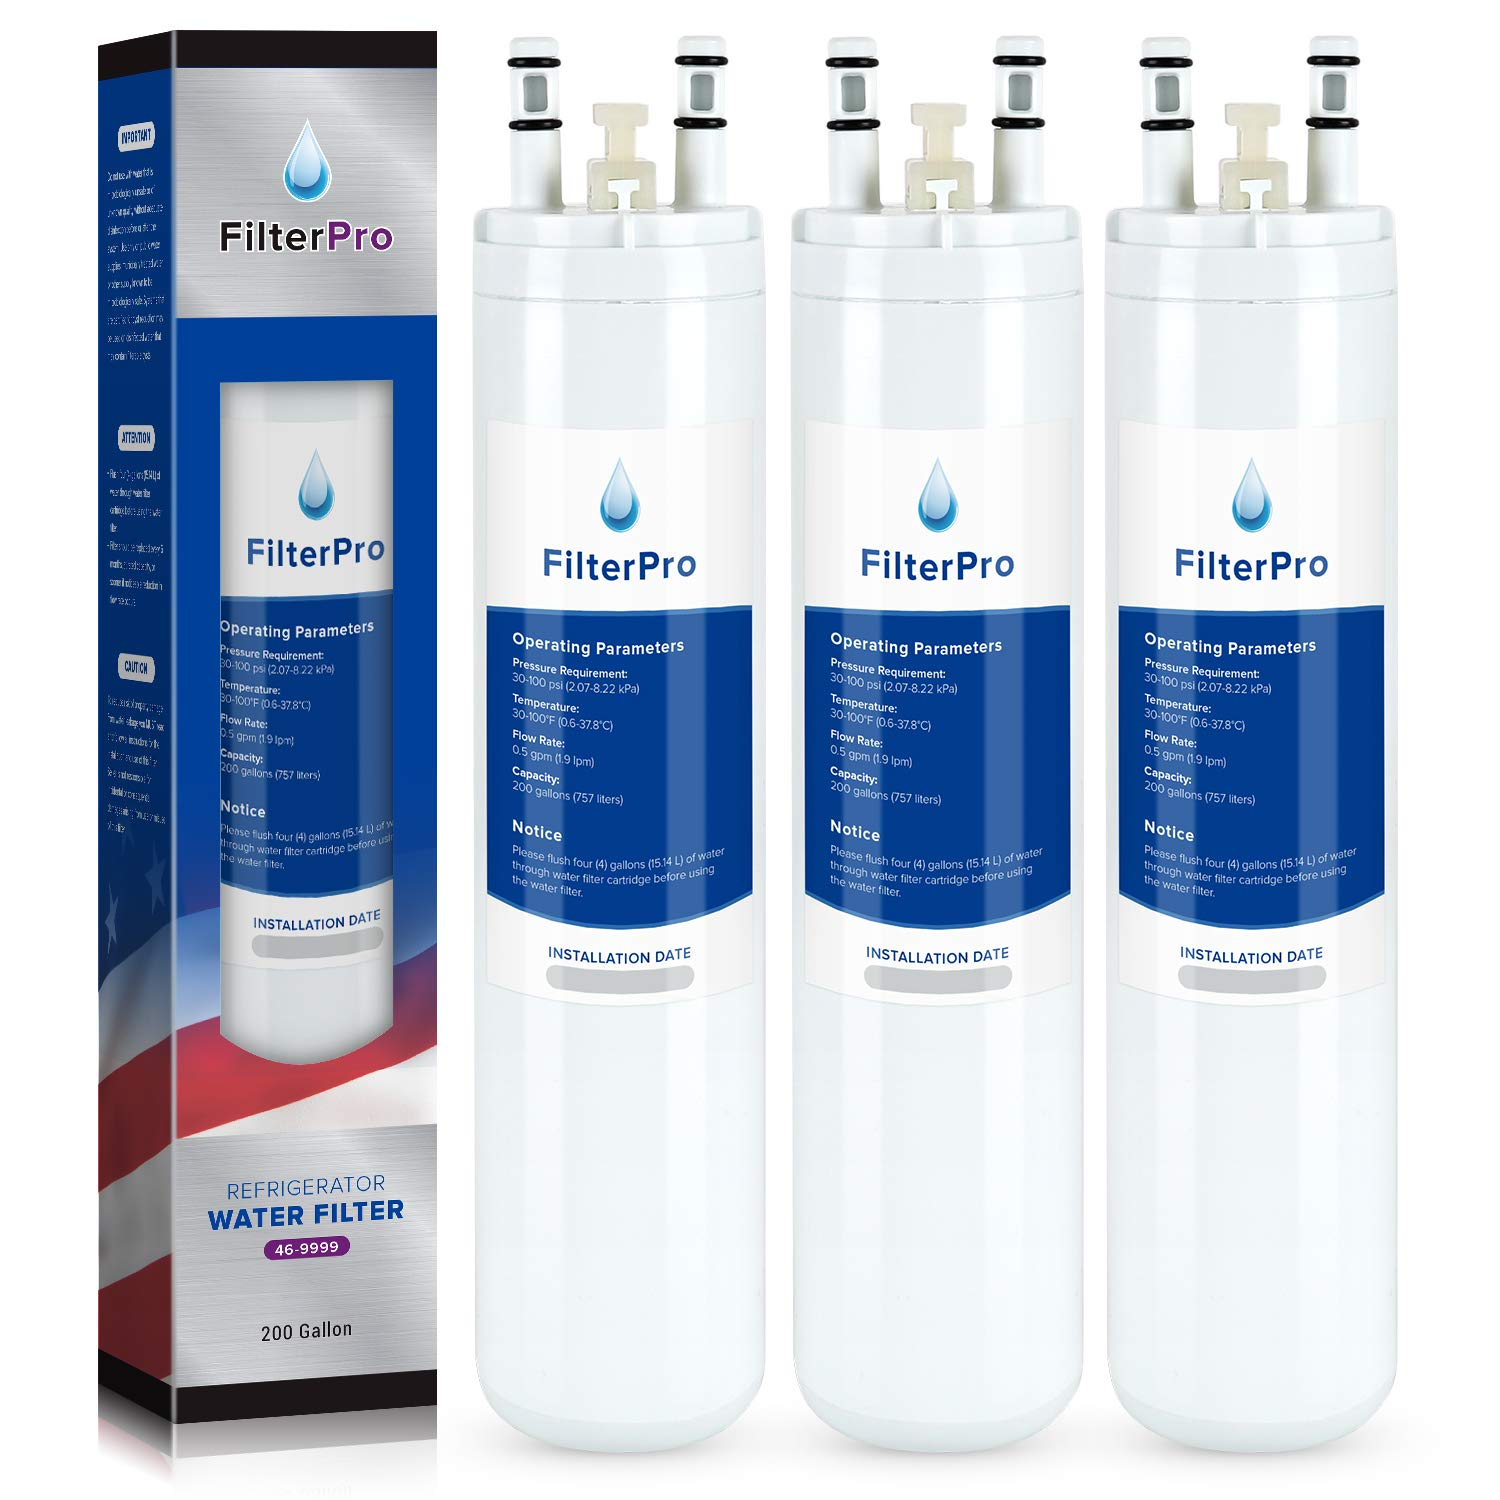 FilterPro Replacement for Refrigerator Water Filter 9999, white (3 Pack)